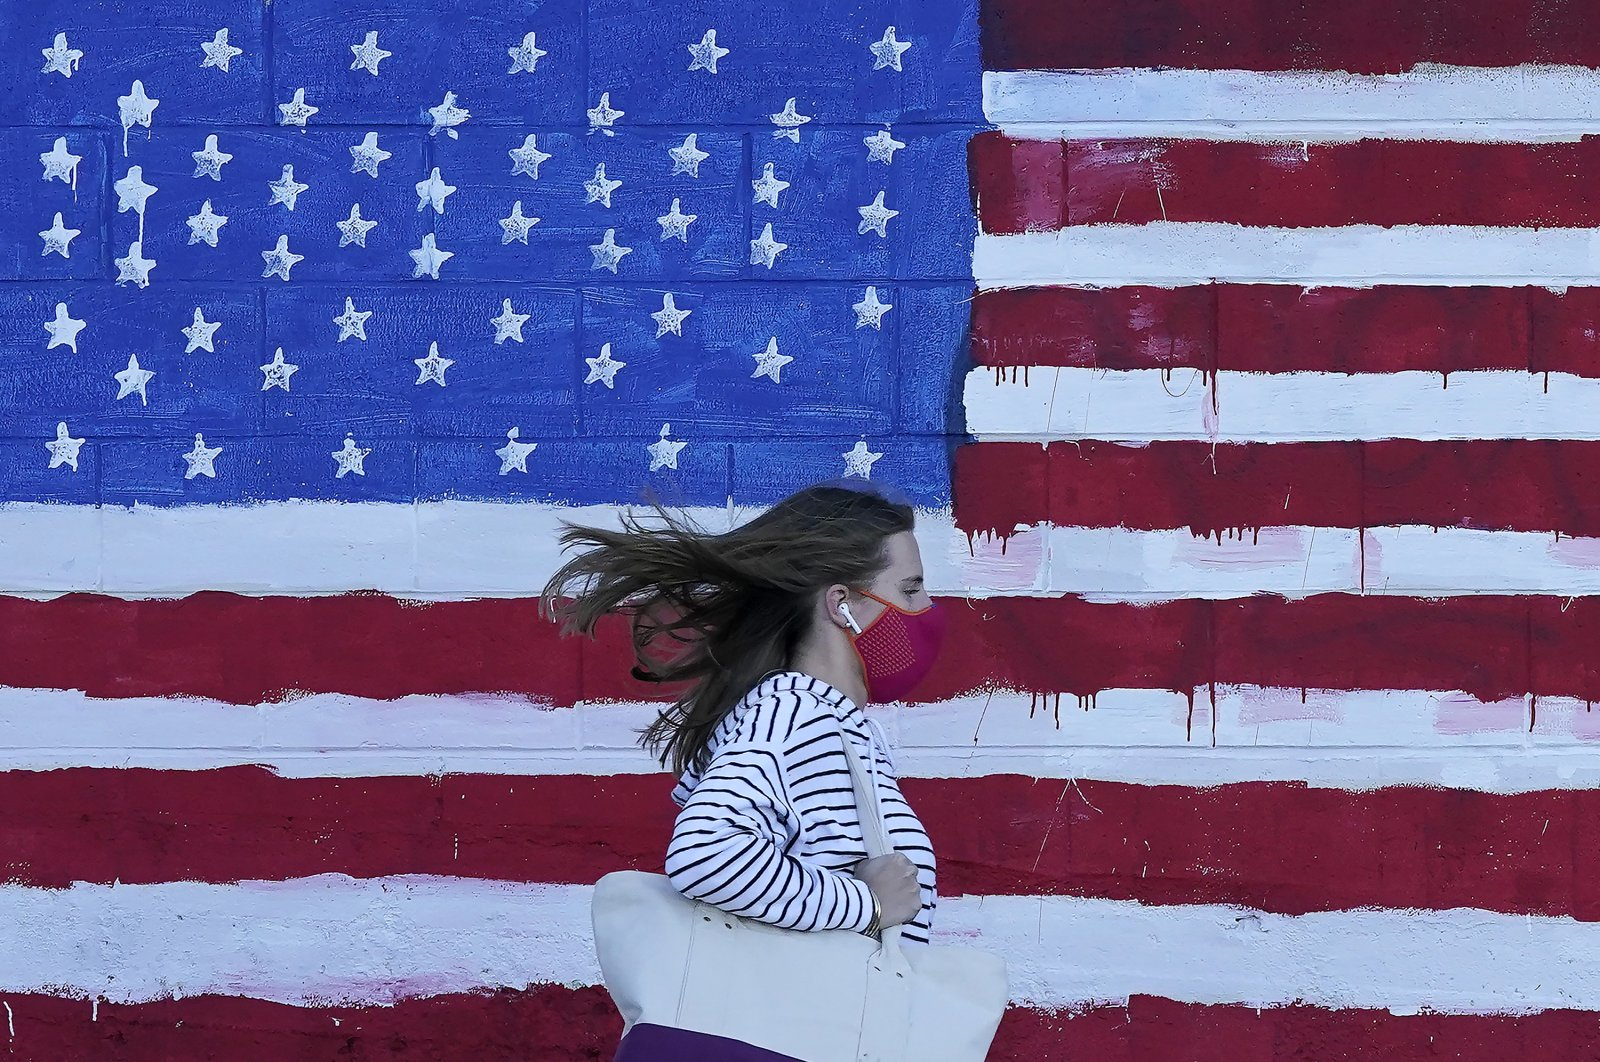 A woman wears a mask while walking past an American flag painted on a wall, San Francisco, California, Nov. 16, 2020. (AP Photo)